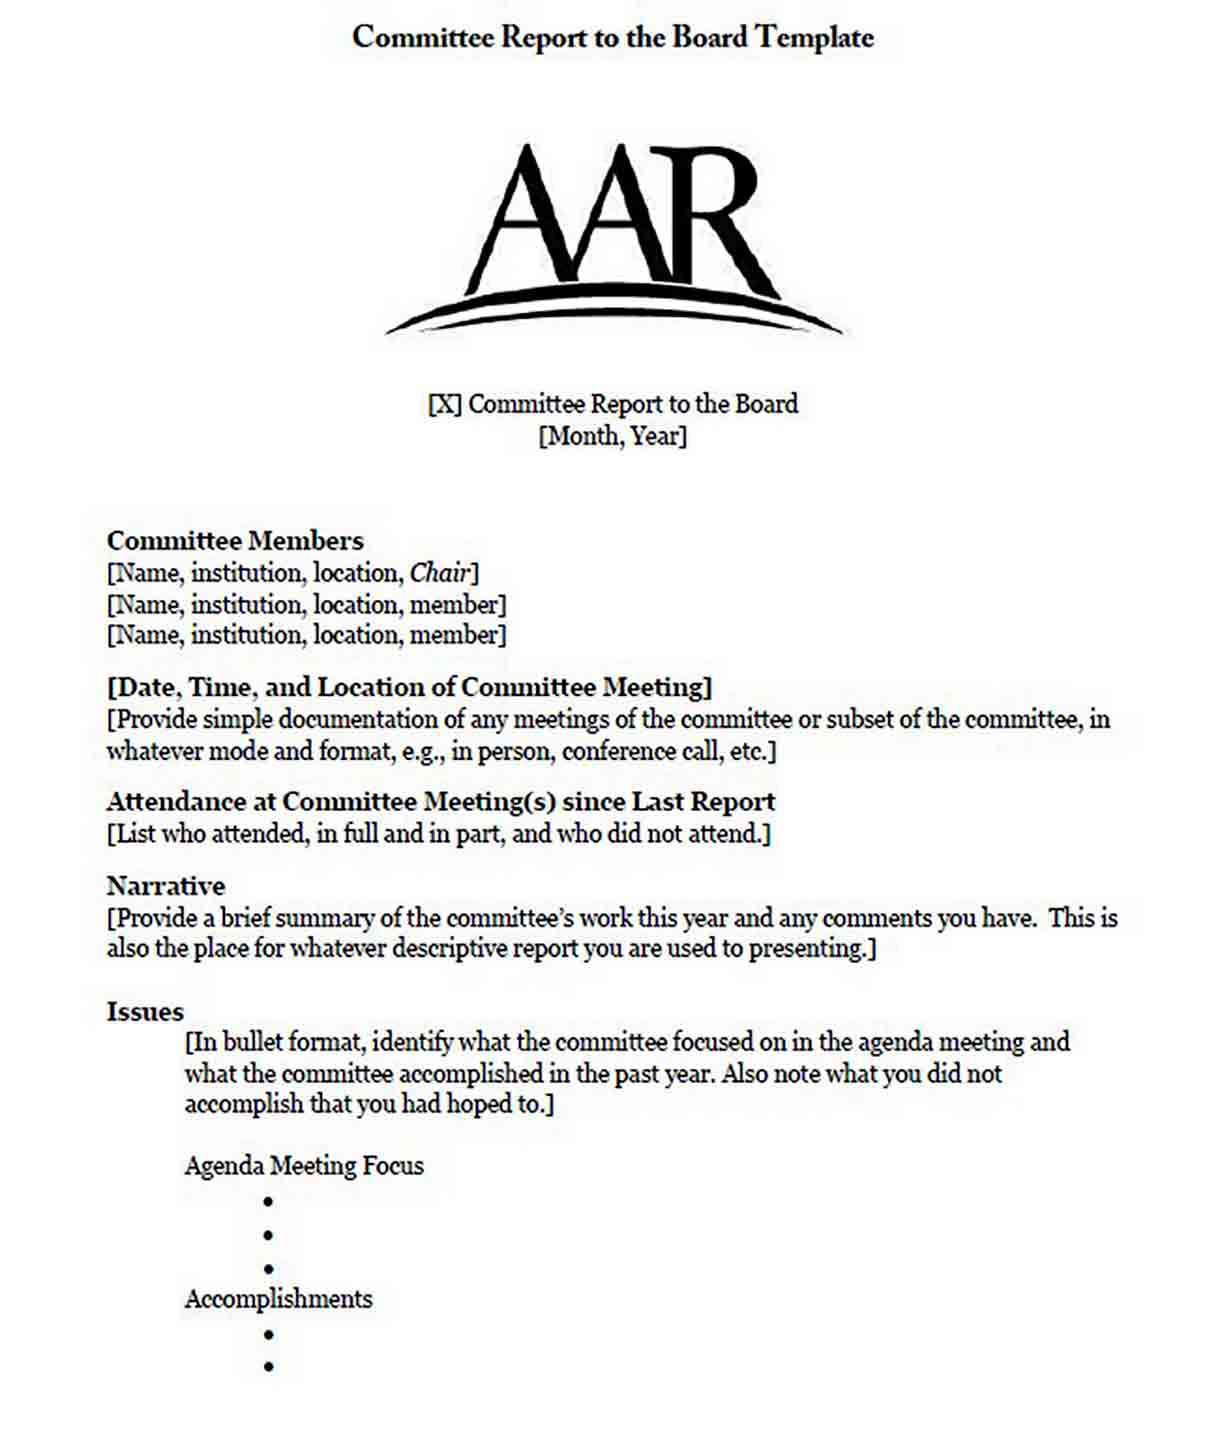 Committee Report to the Board Template sample